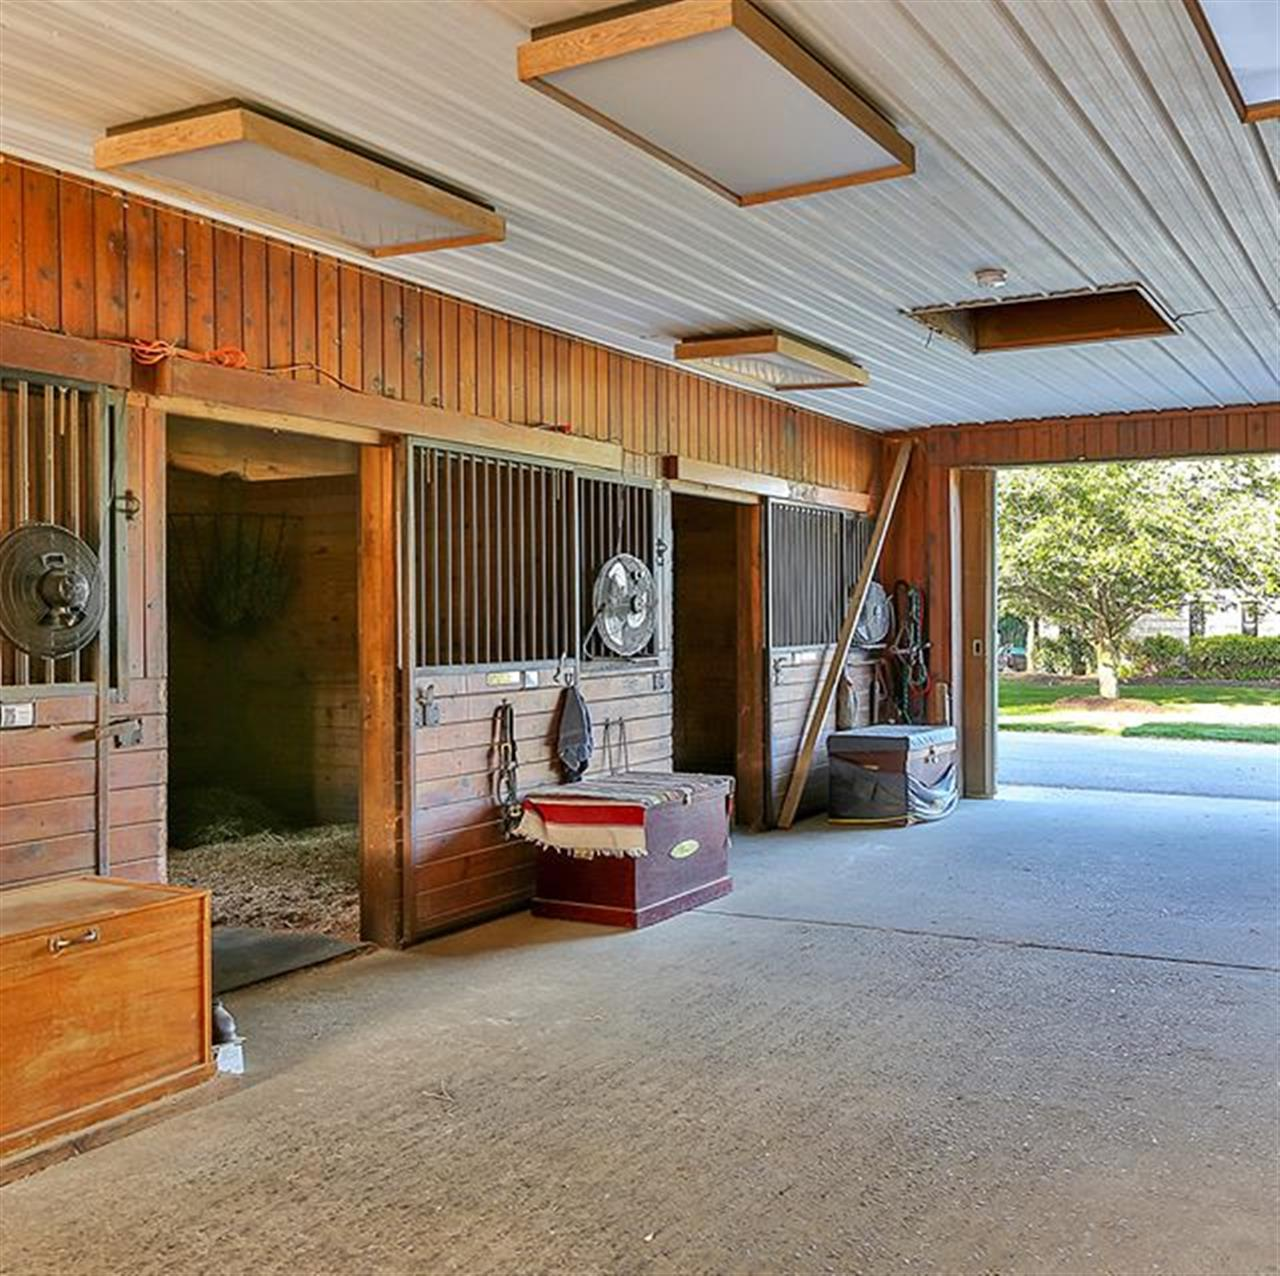 Check out this 8 Stall barn! . 45 Cross Road Colts Neck, NJ http://bit.ly/2xnc17z